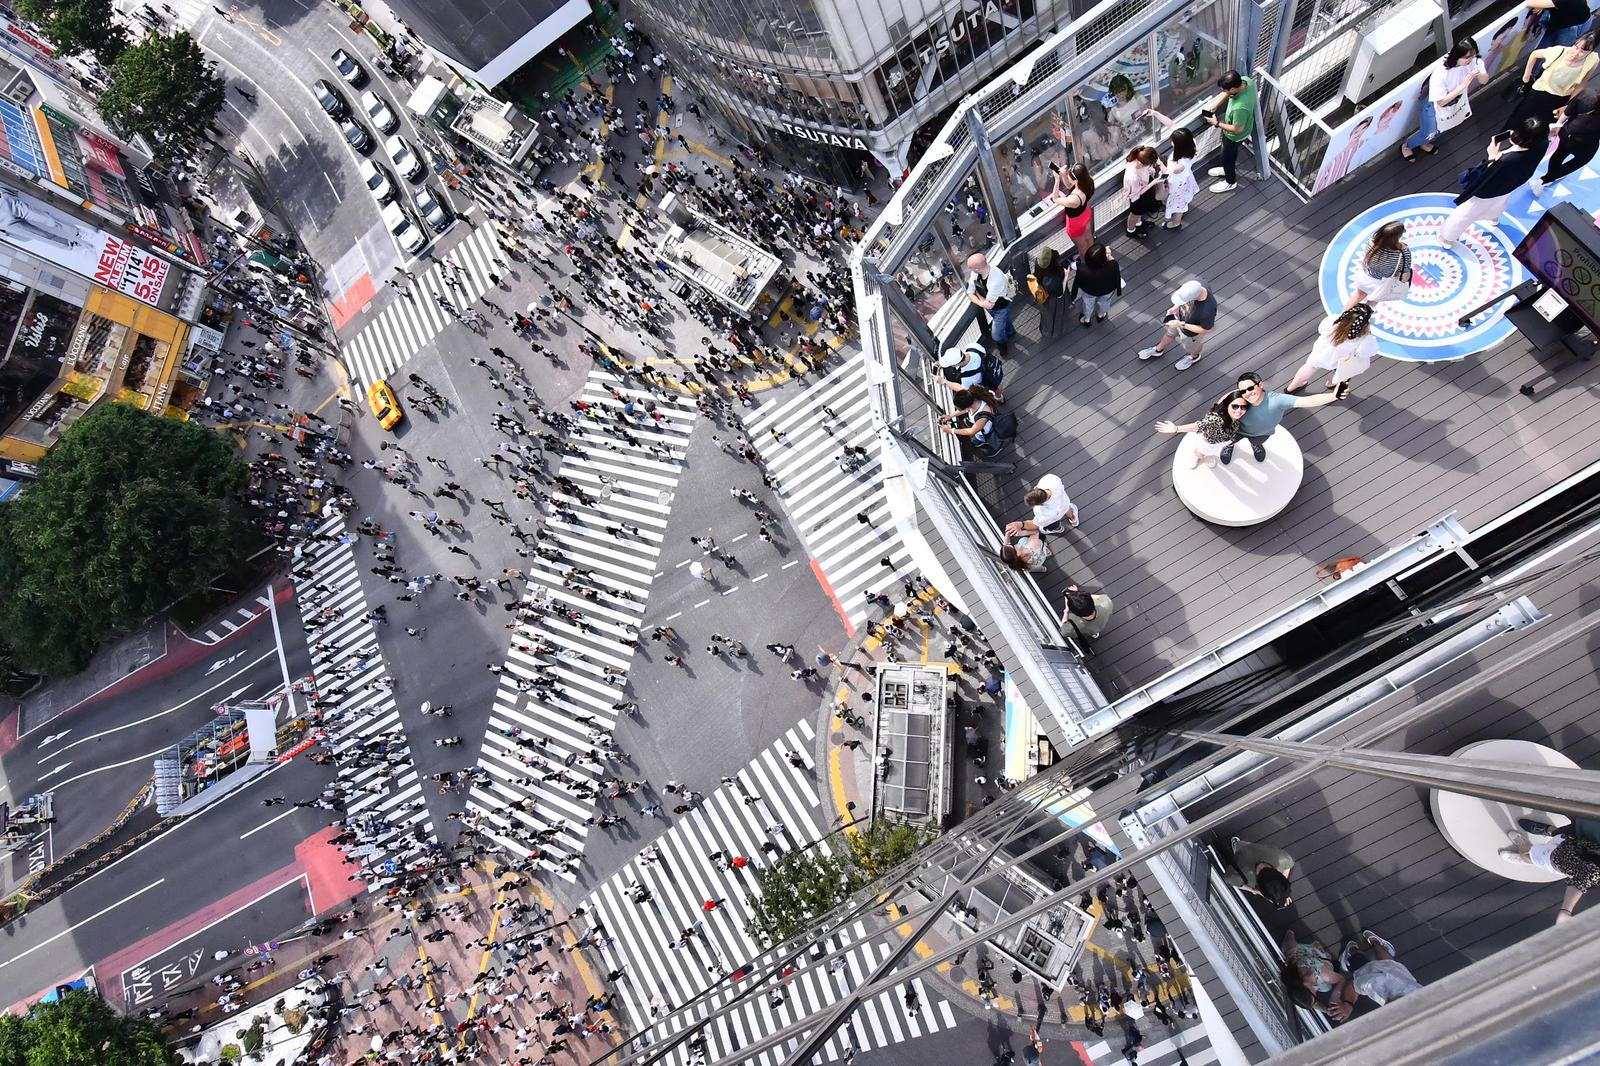 Shibuya crossing seem from above.